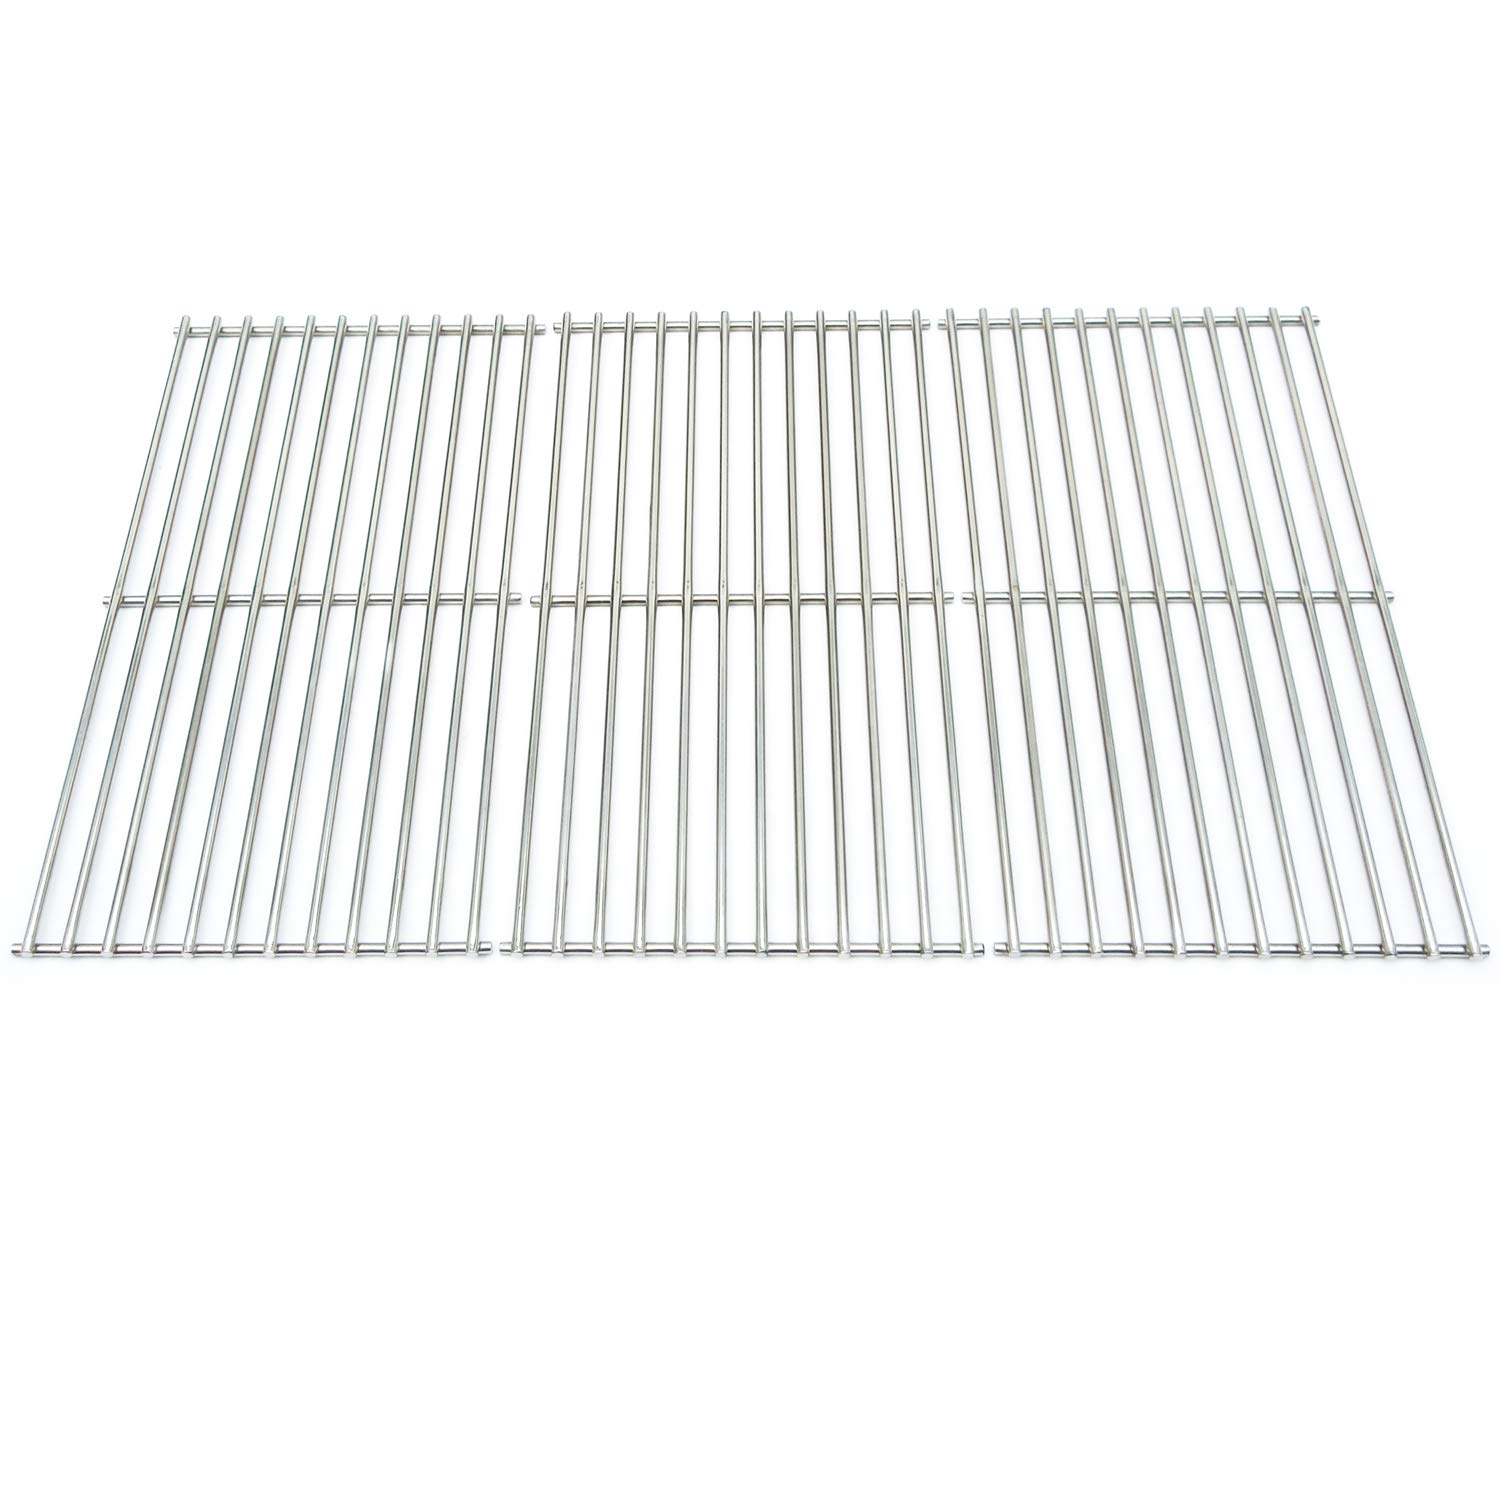 Direct Store Parts DS115 Solid Stainless Steel Cooking grids Replacement Brinkmann,Charmglow,Costco, Jenn Air,Members Mark, Nexgrill, Perfect Flame,SAMS Club Gas Grill by Direct Store